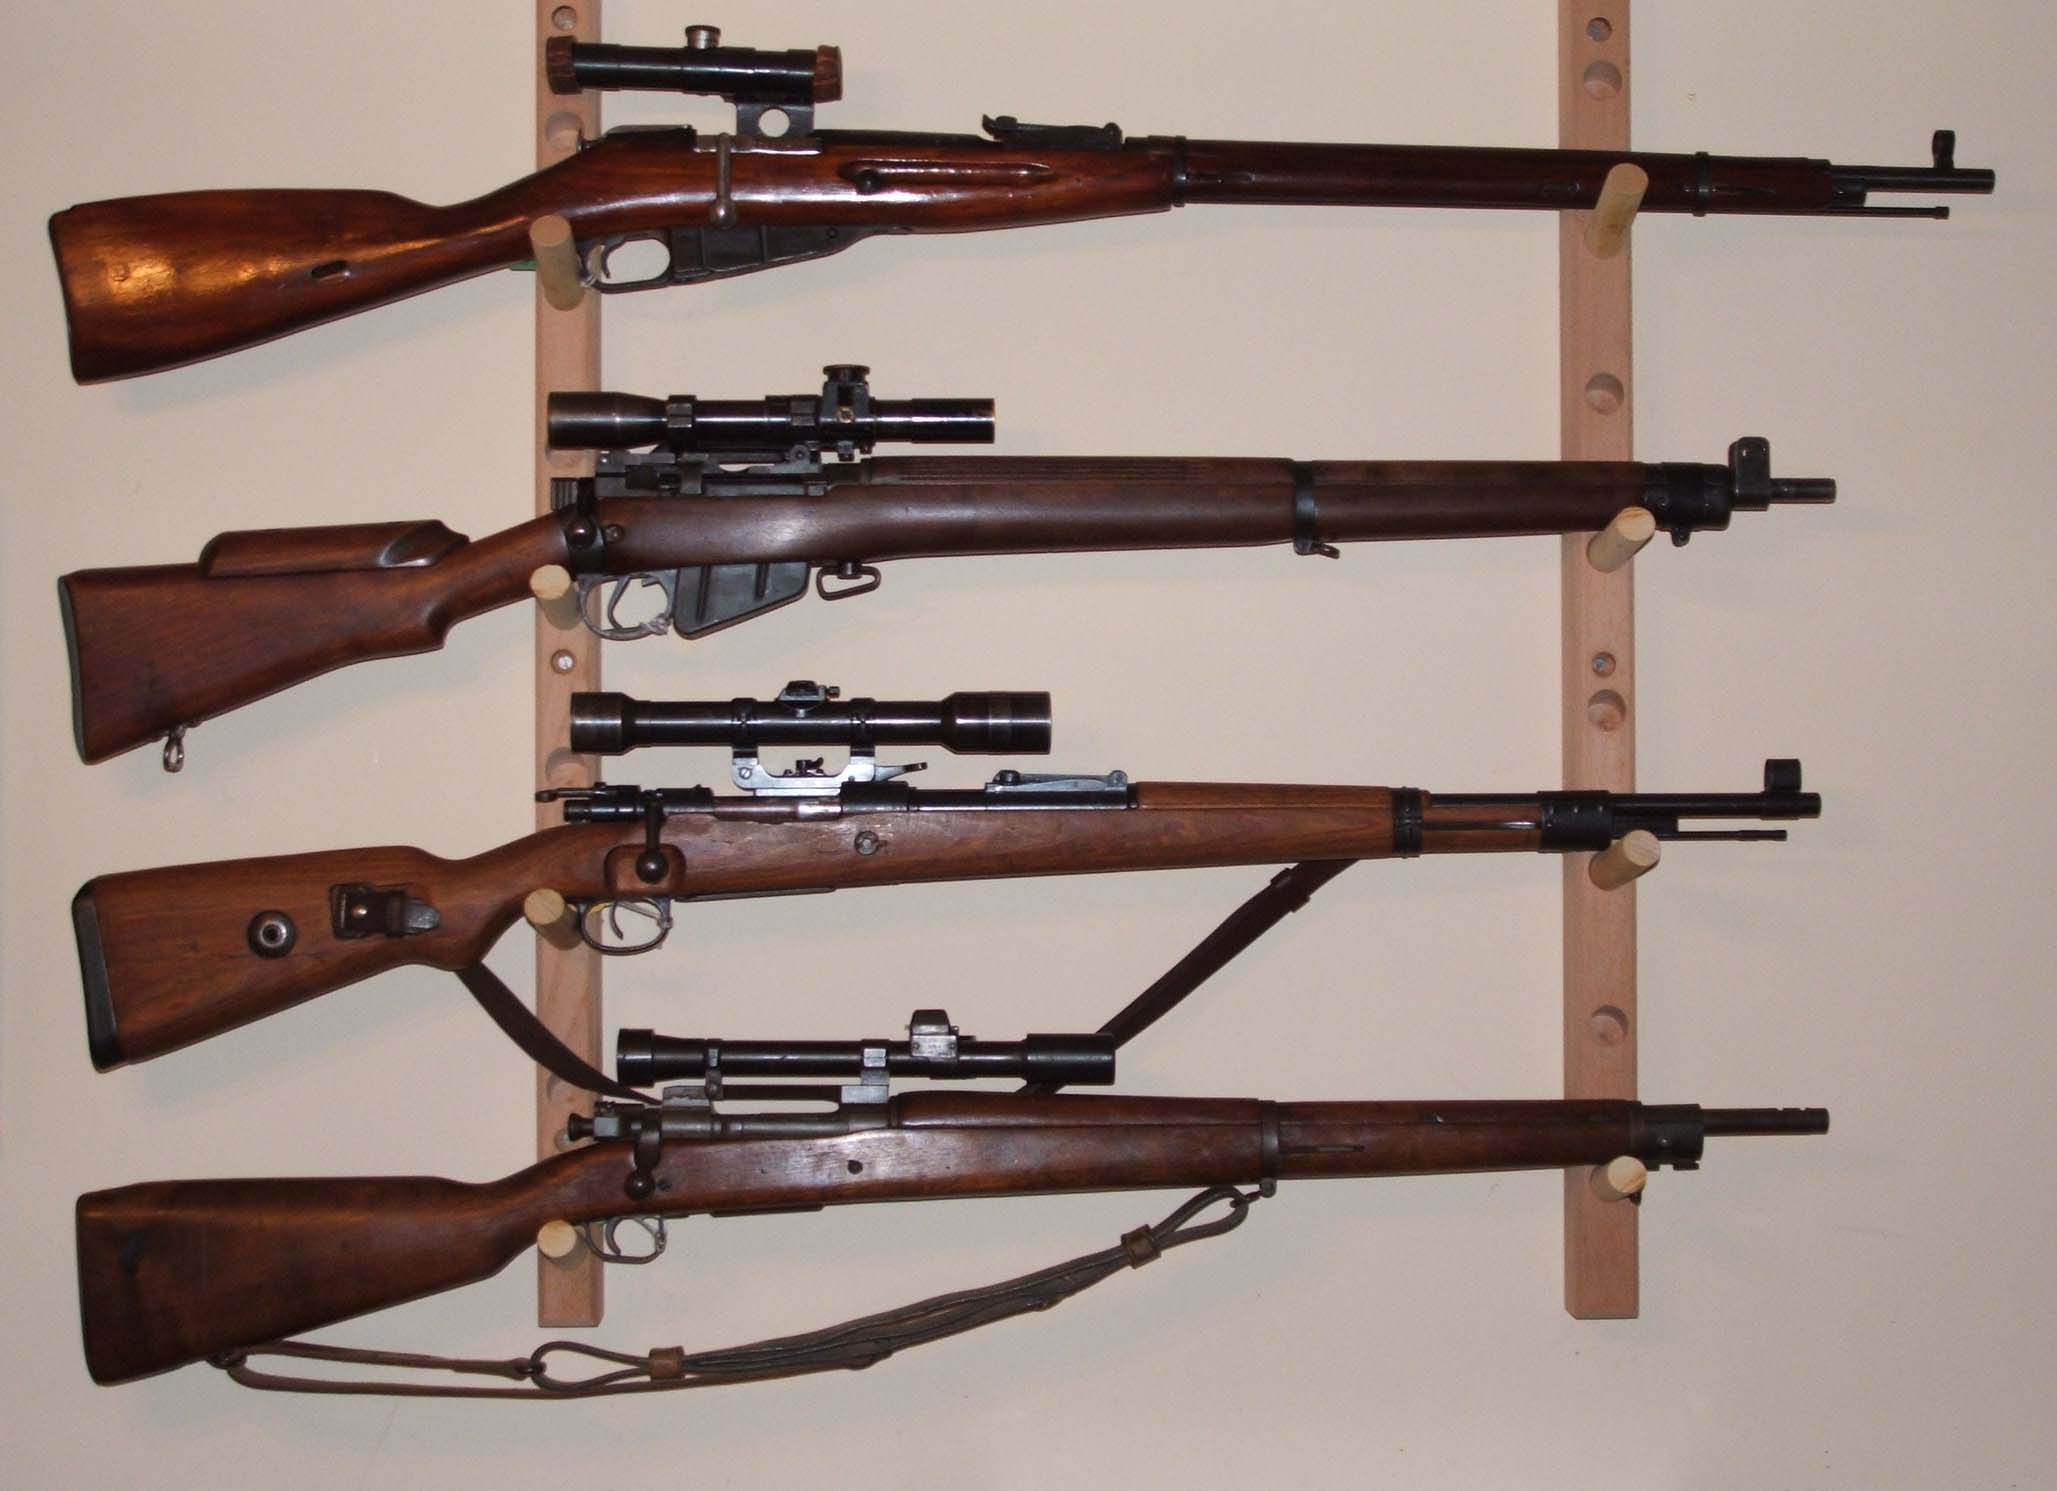 303 British Sniper Rifles http://www.byswordandmusket.co.uk/past-sales/rifles-requiring-a-firearms-license/sniper-rifles-ww2-era/